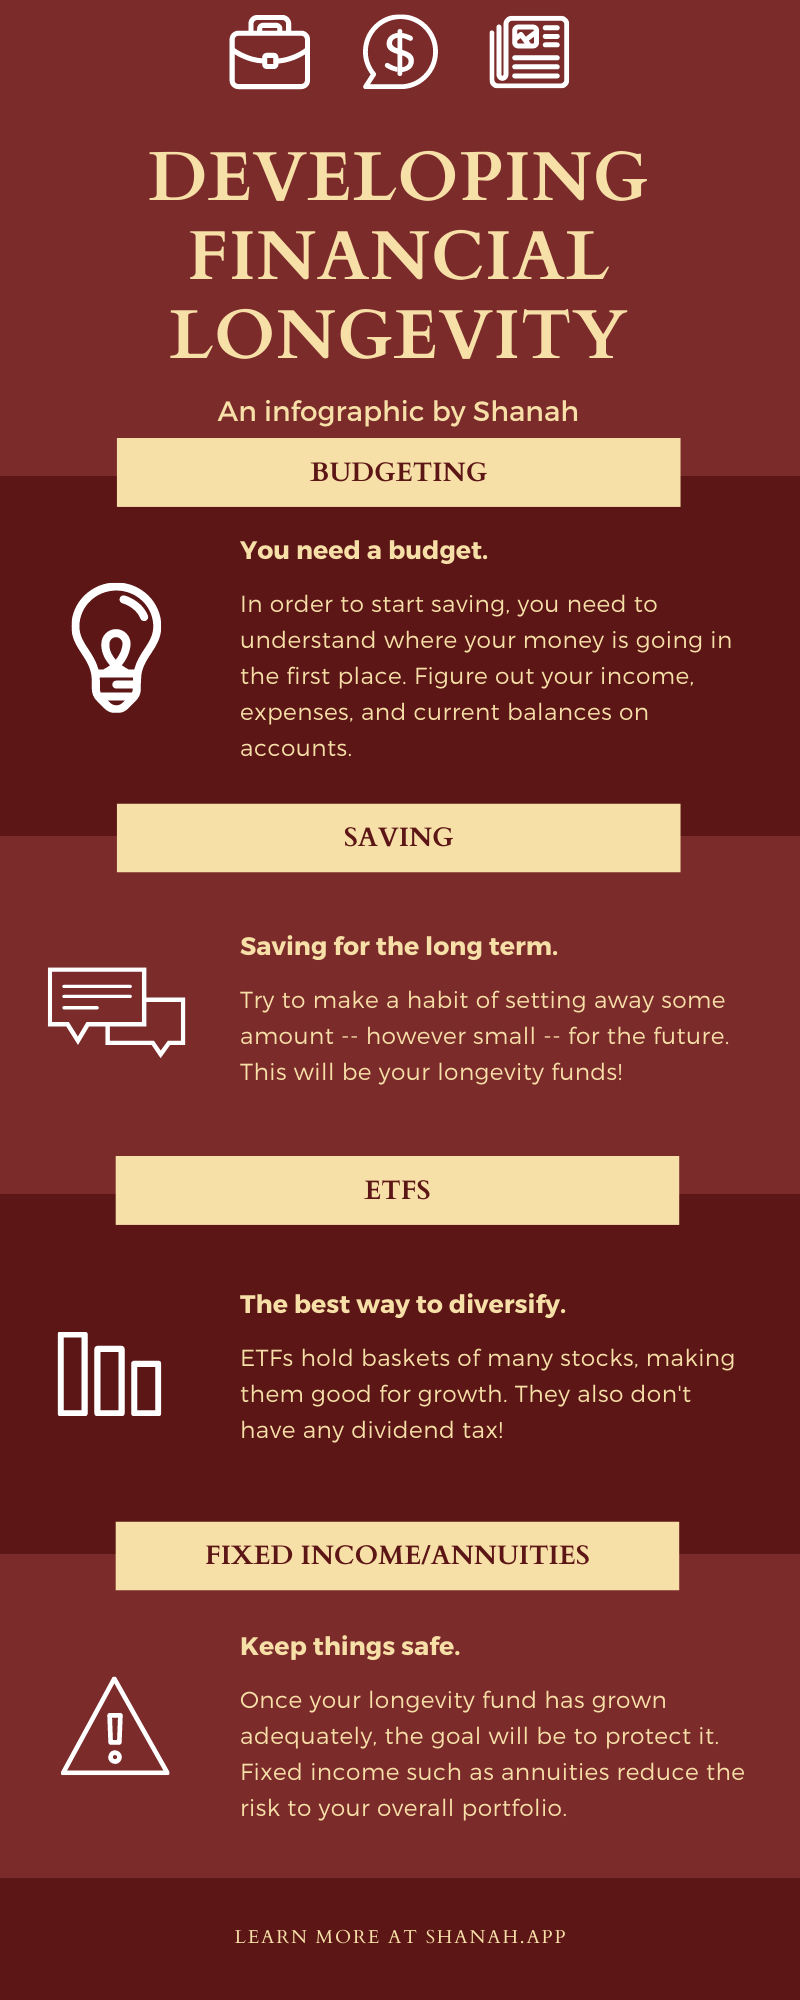 Here's the Financial Longevity Infographic